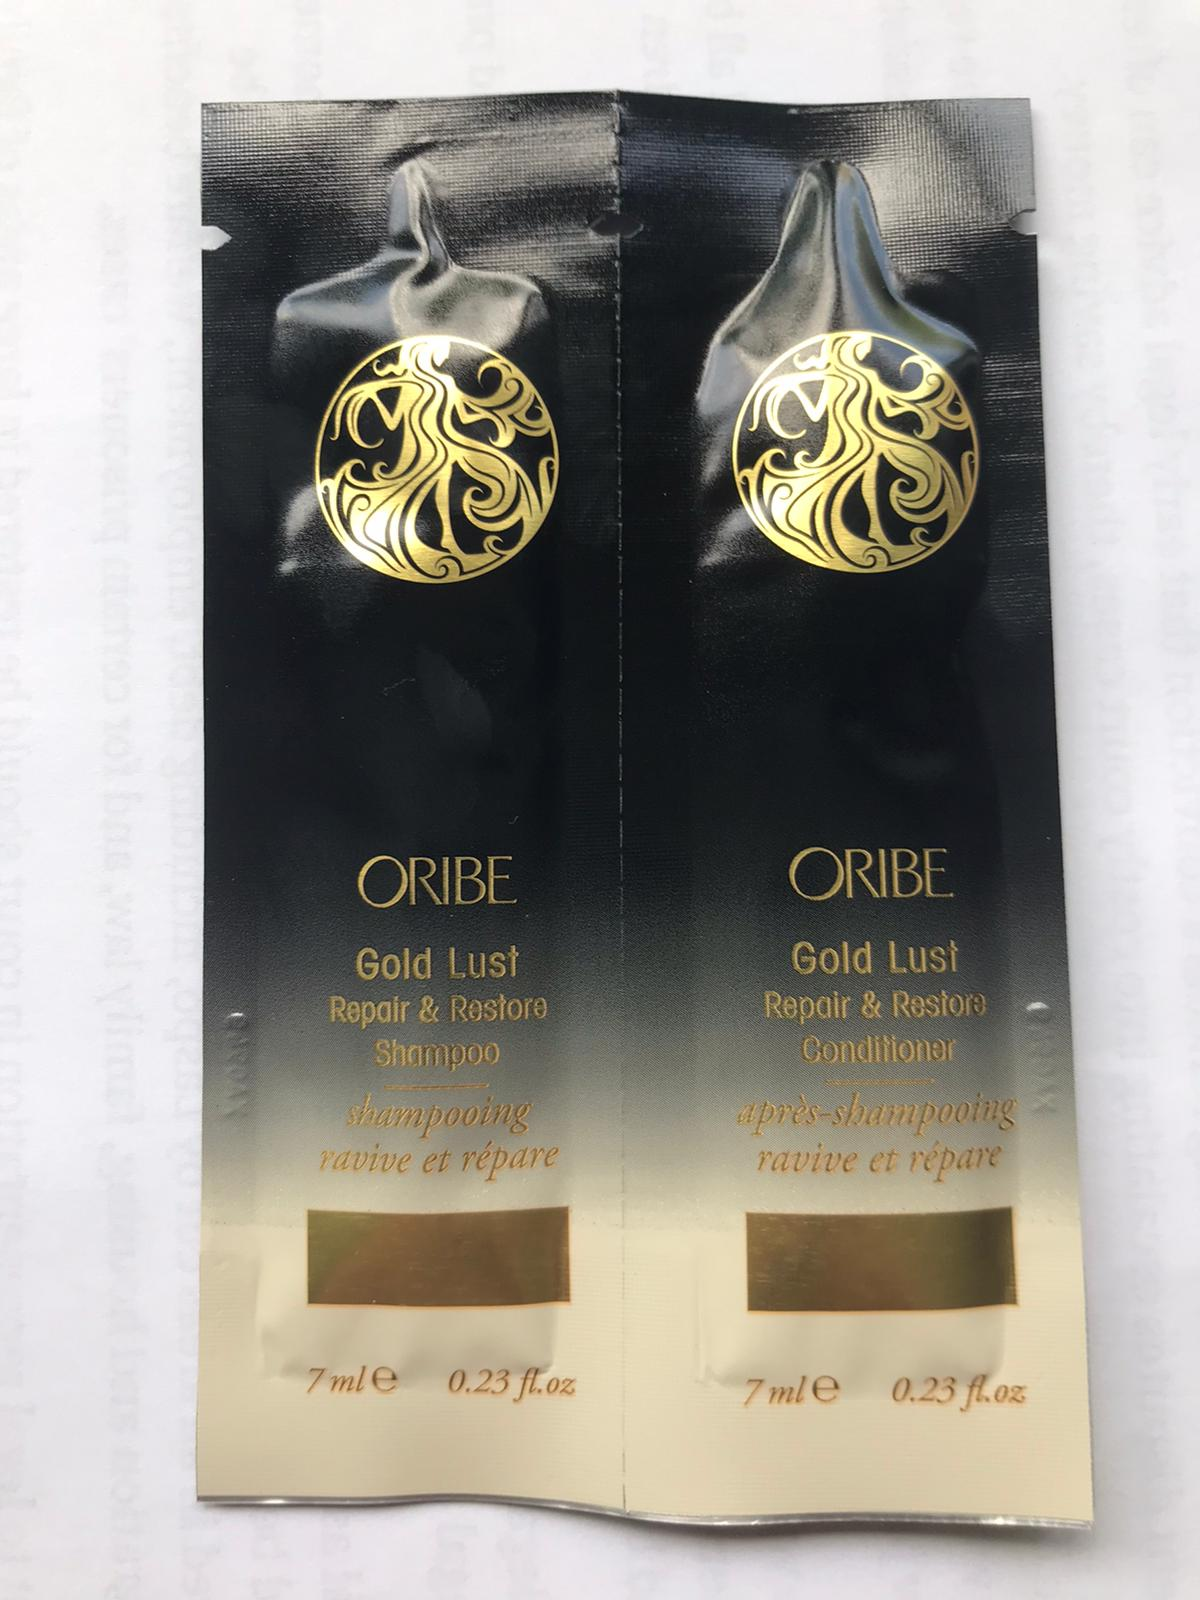 300 x Oribe Gold Lust Repair And Restore Shampoo And Conditioner Sachets